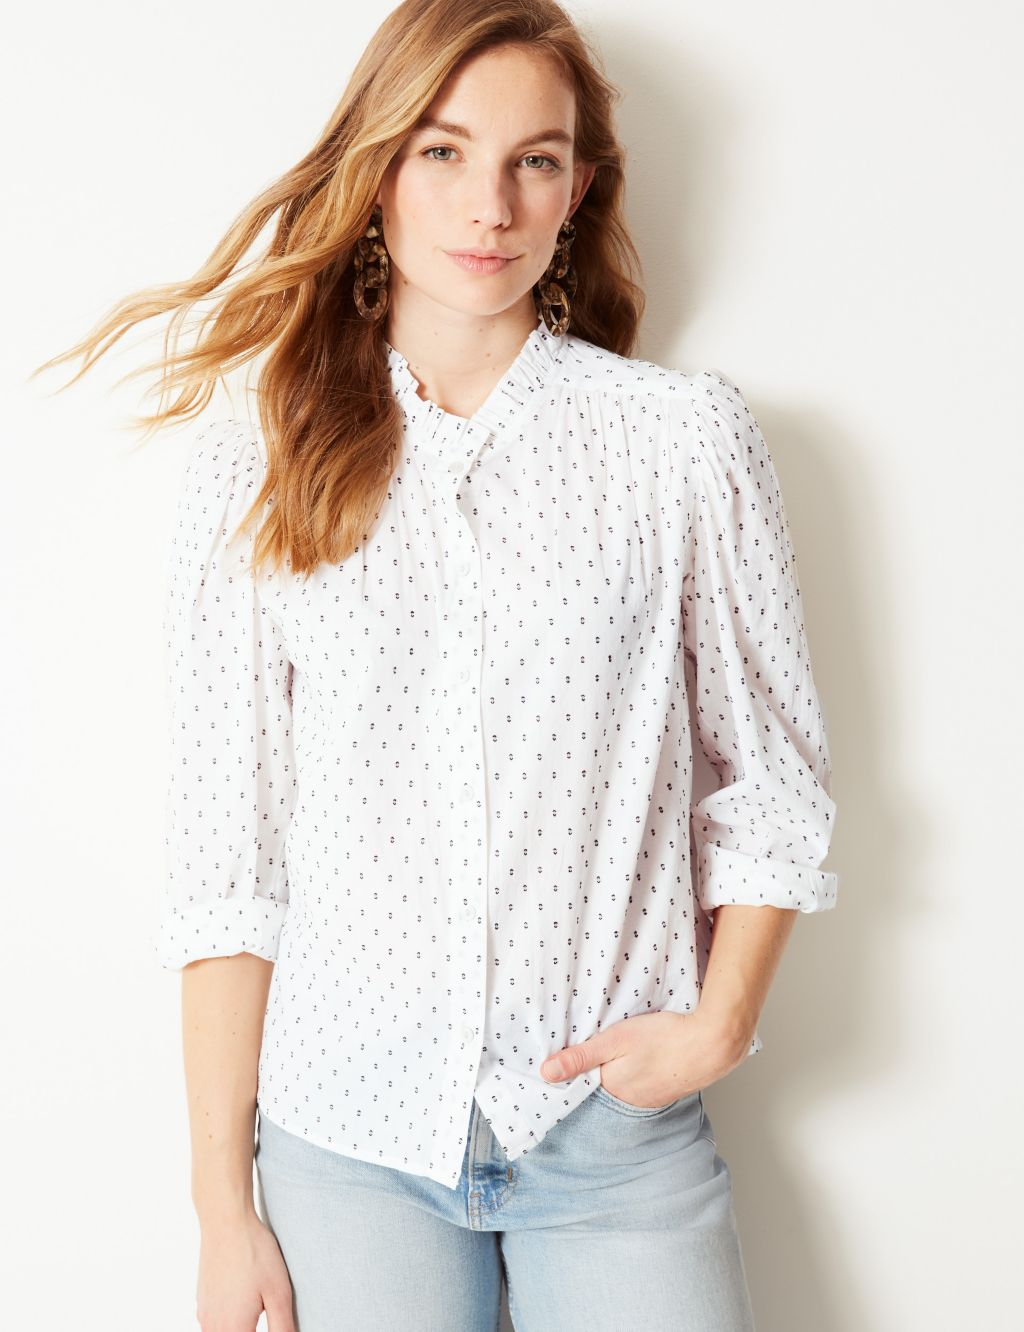 M&S Printed High Neck Long Sleeve Blouse £25